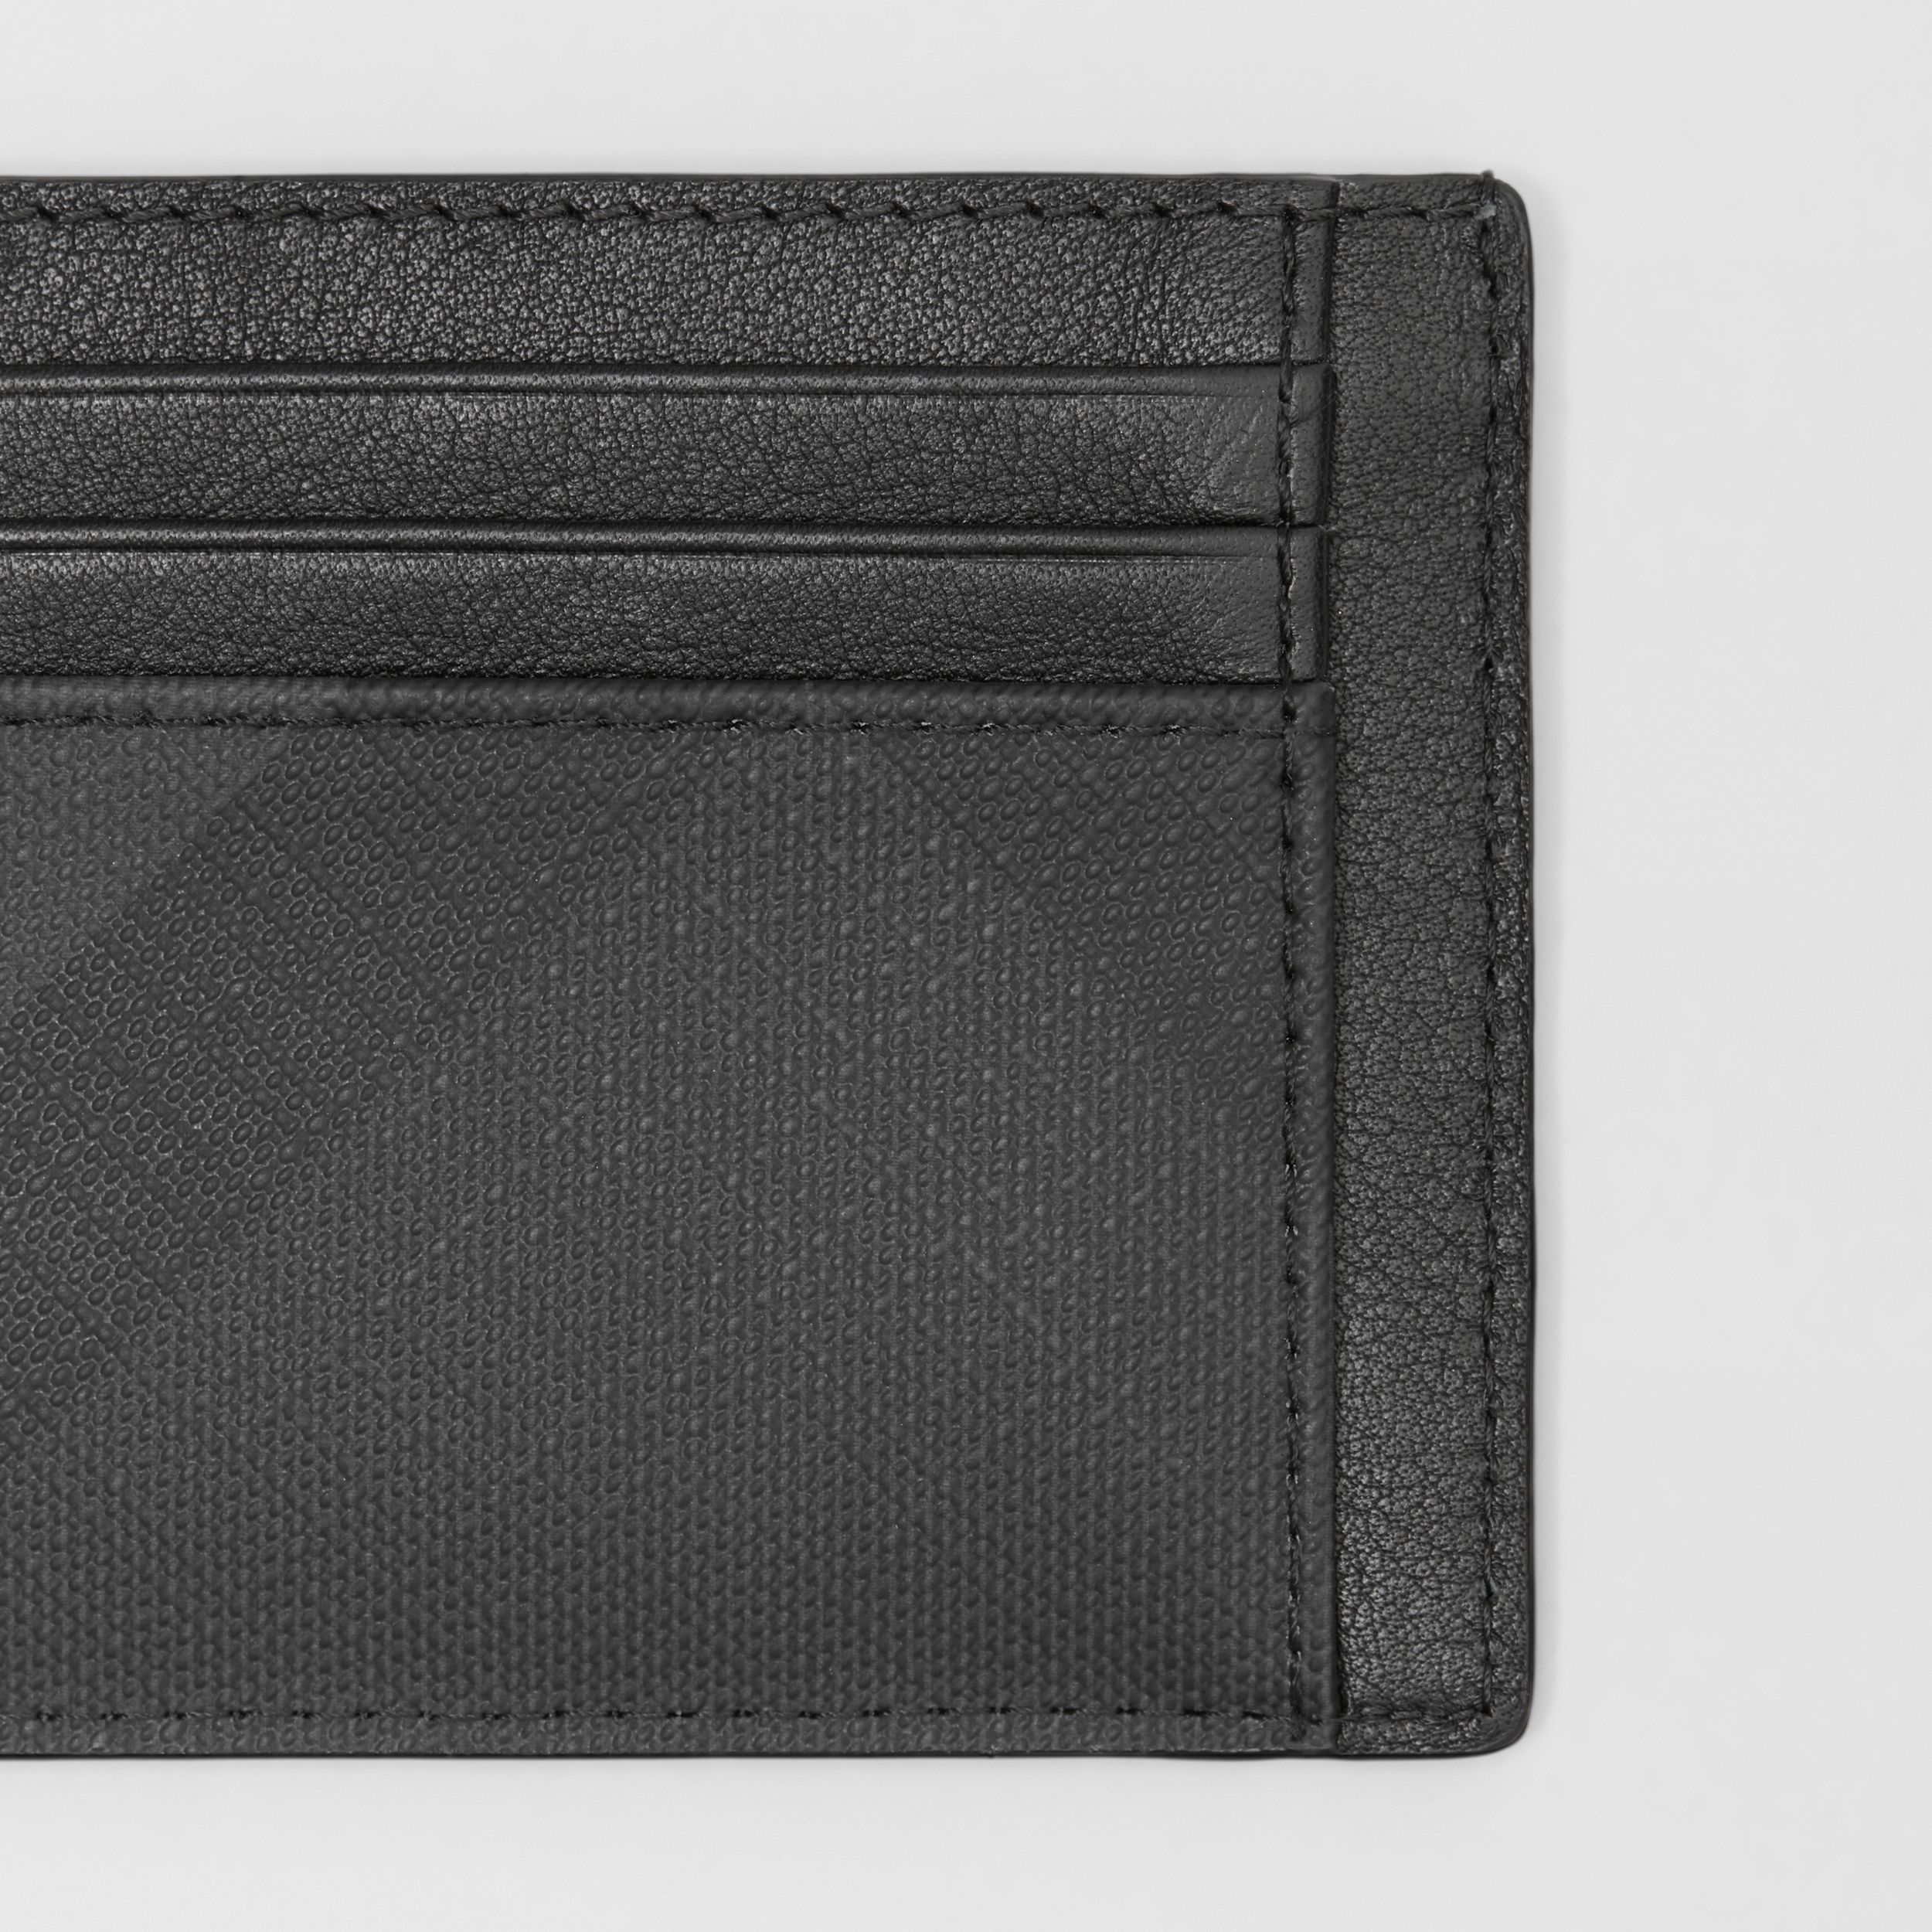 London Check and Leather Card Case in Dark Charcoal - Men | Burberry - 2